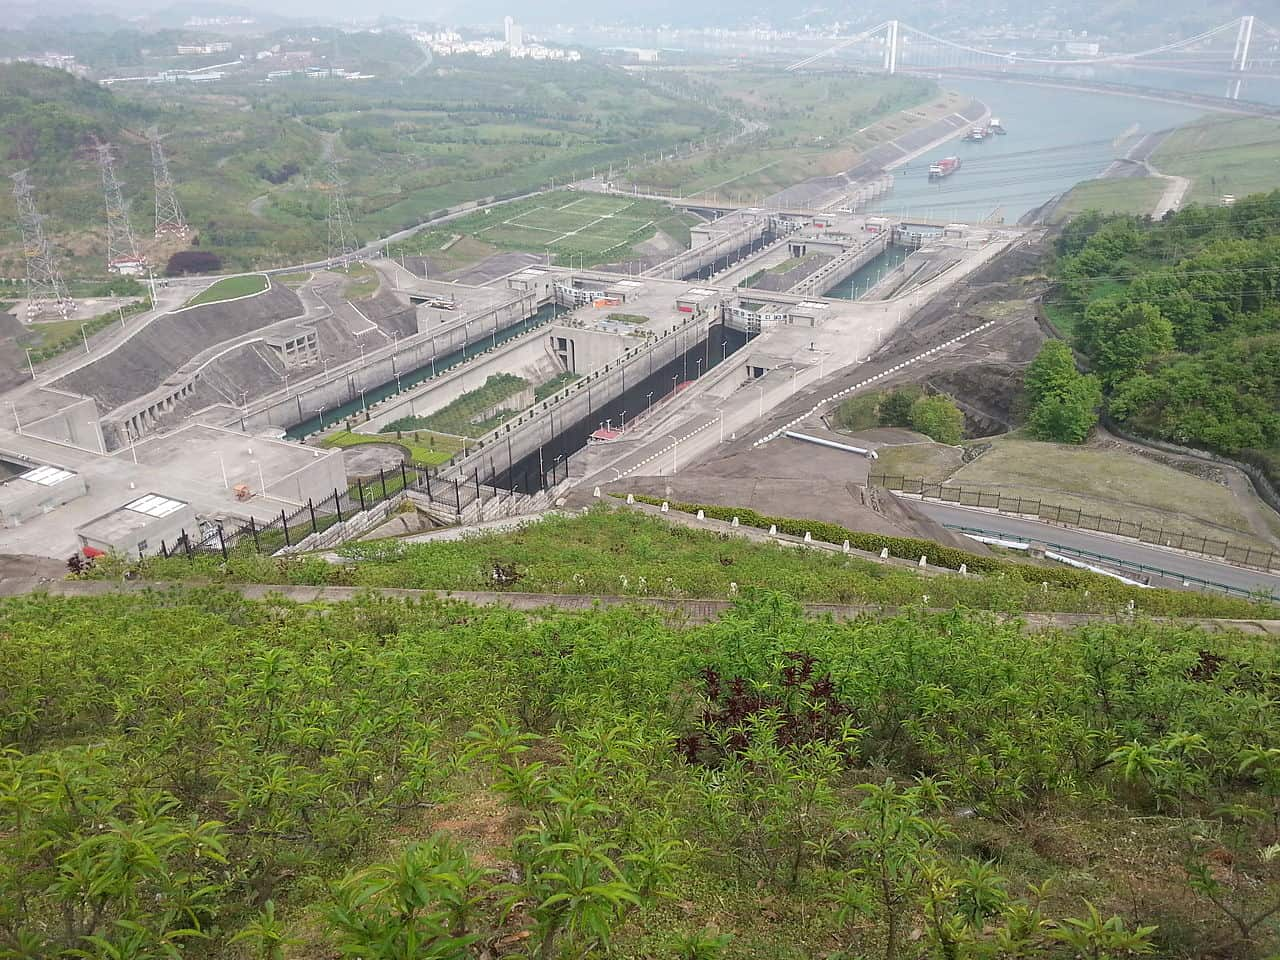 three gorges dam facts, landmarks facts